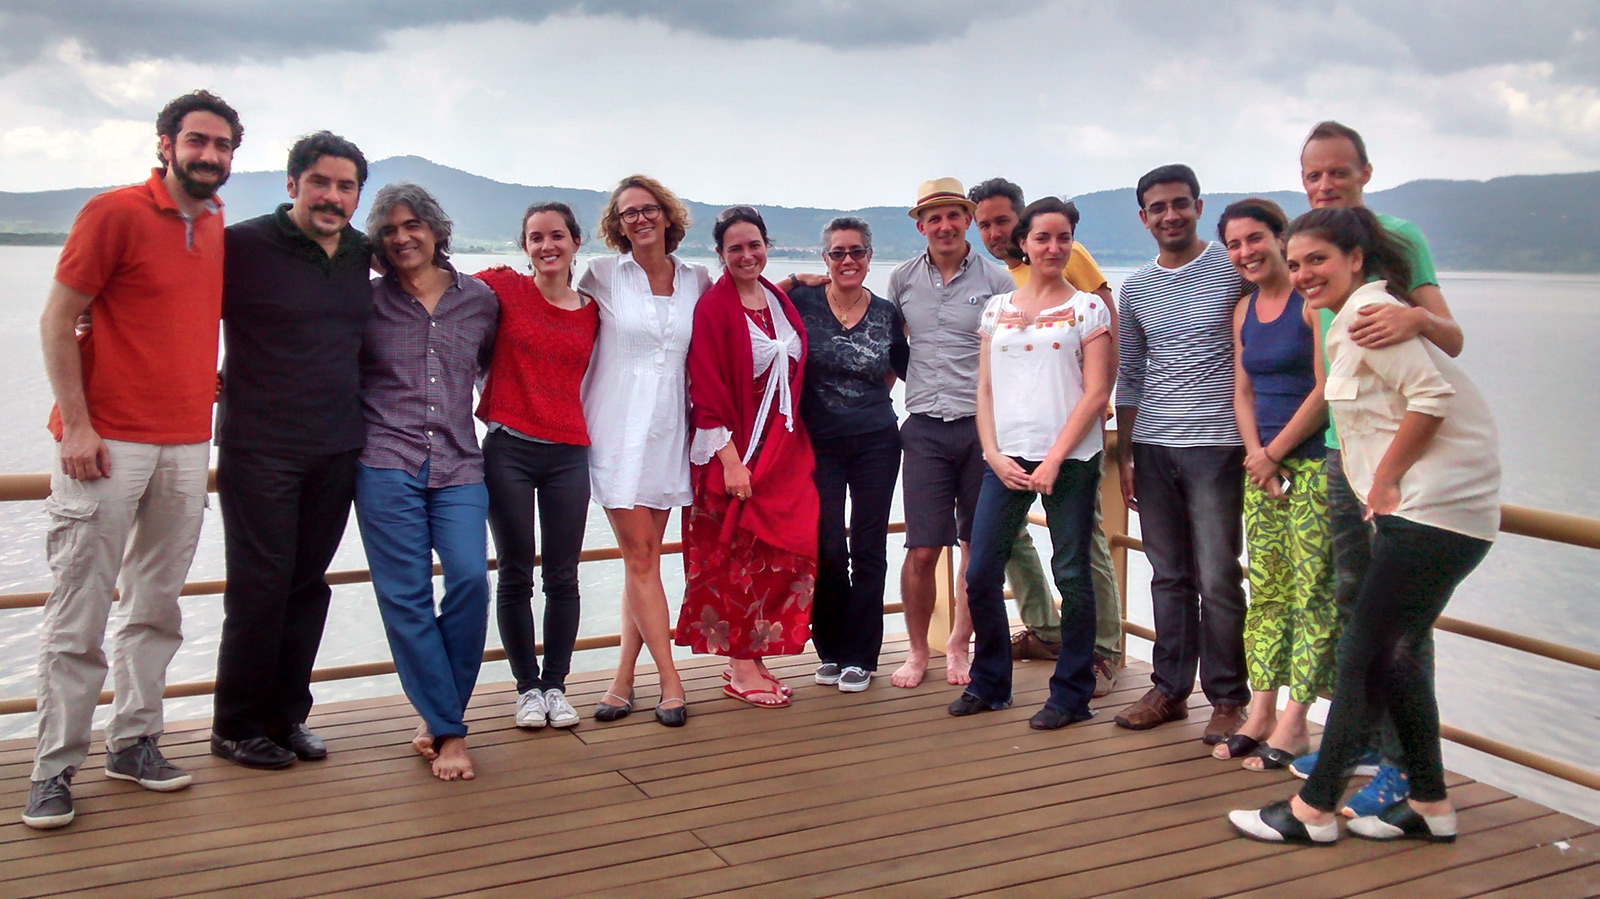 2014 International Screenwriter's Workshop - Participants